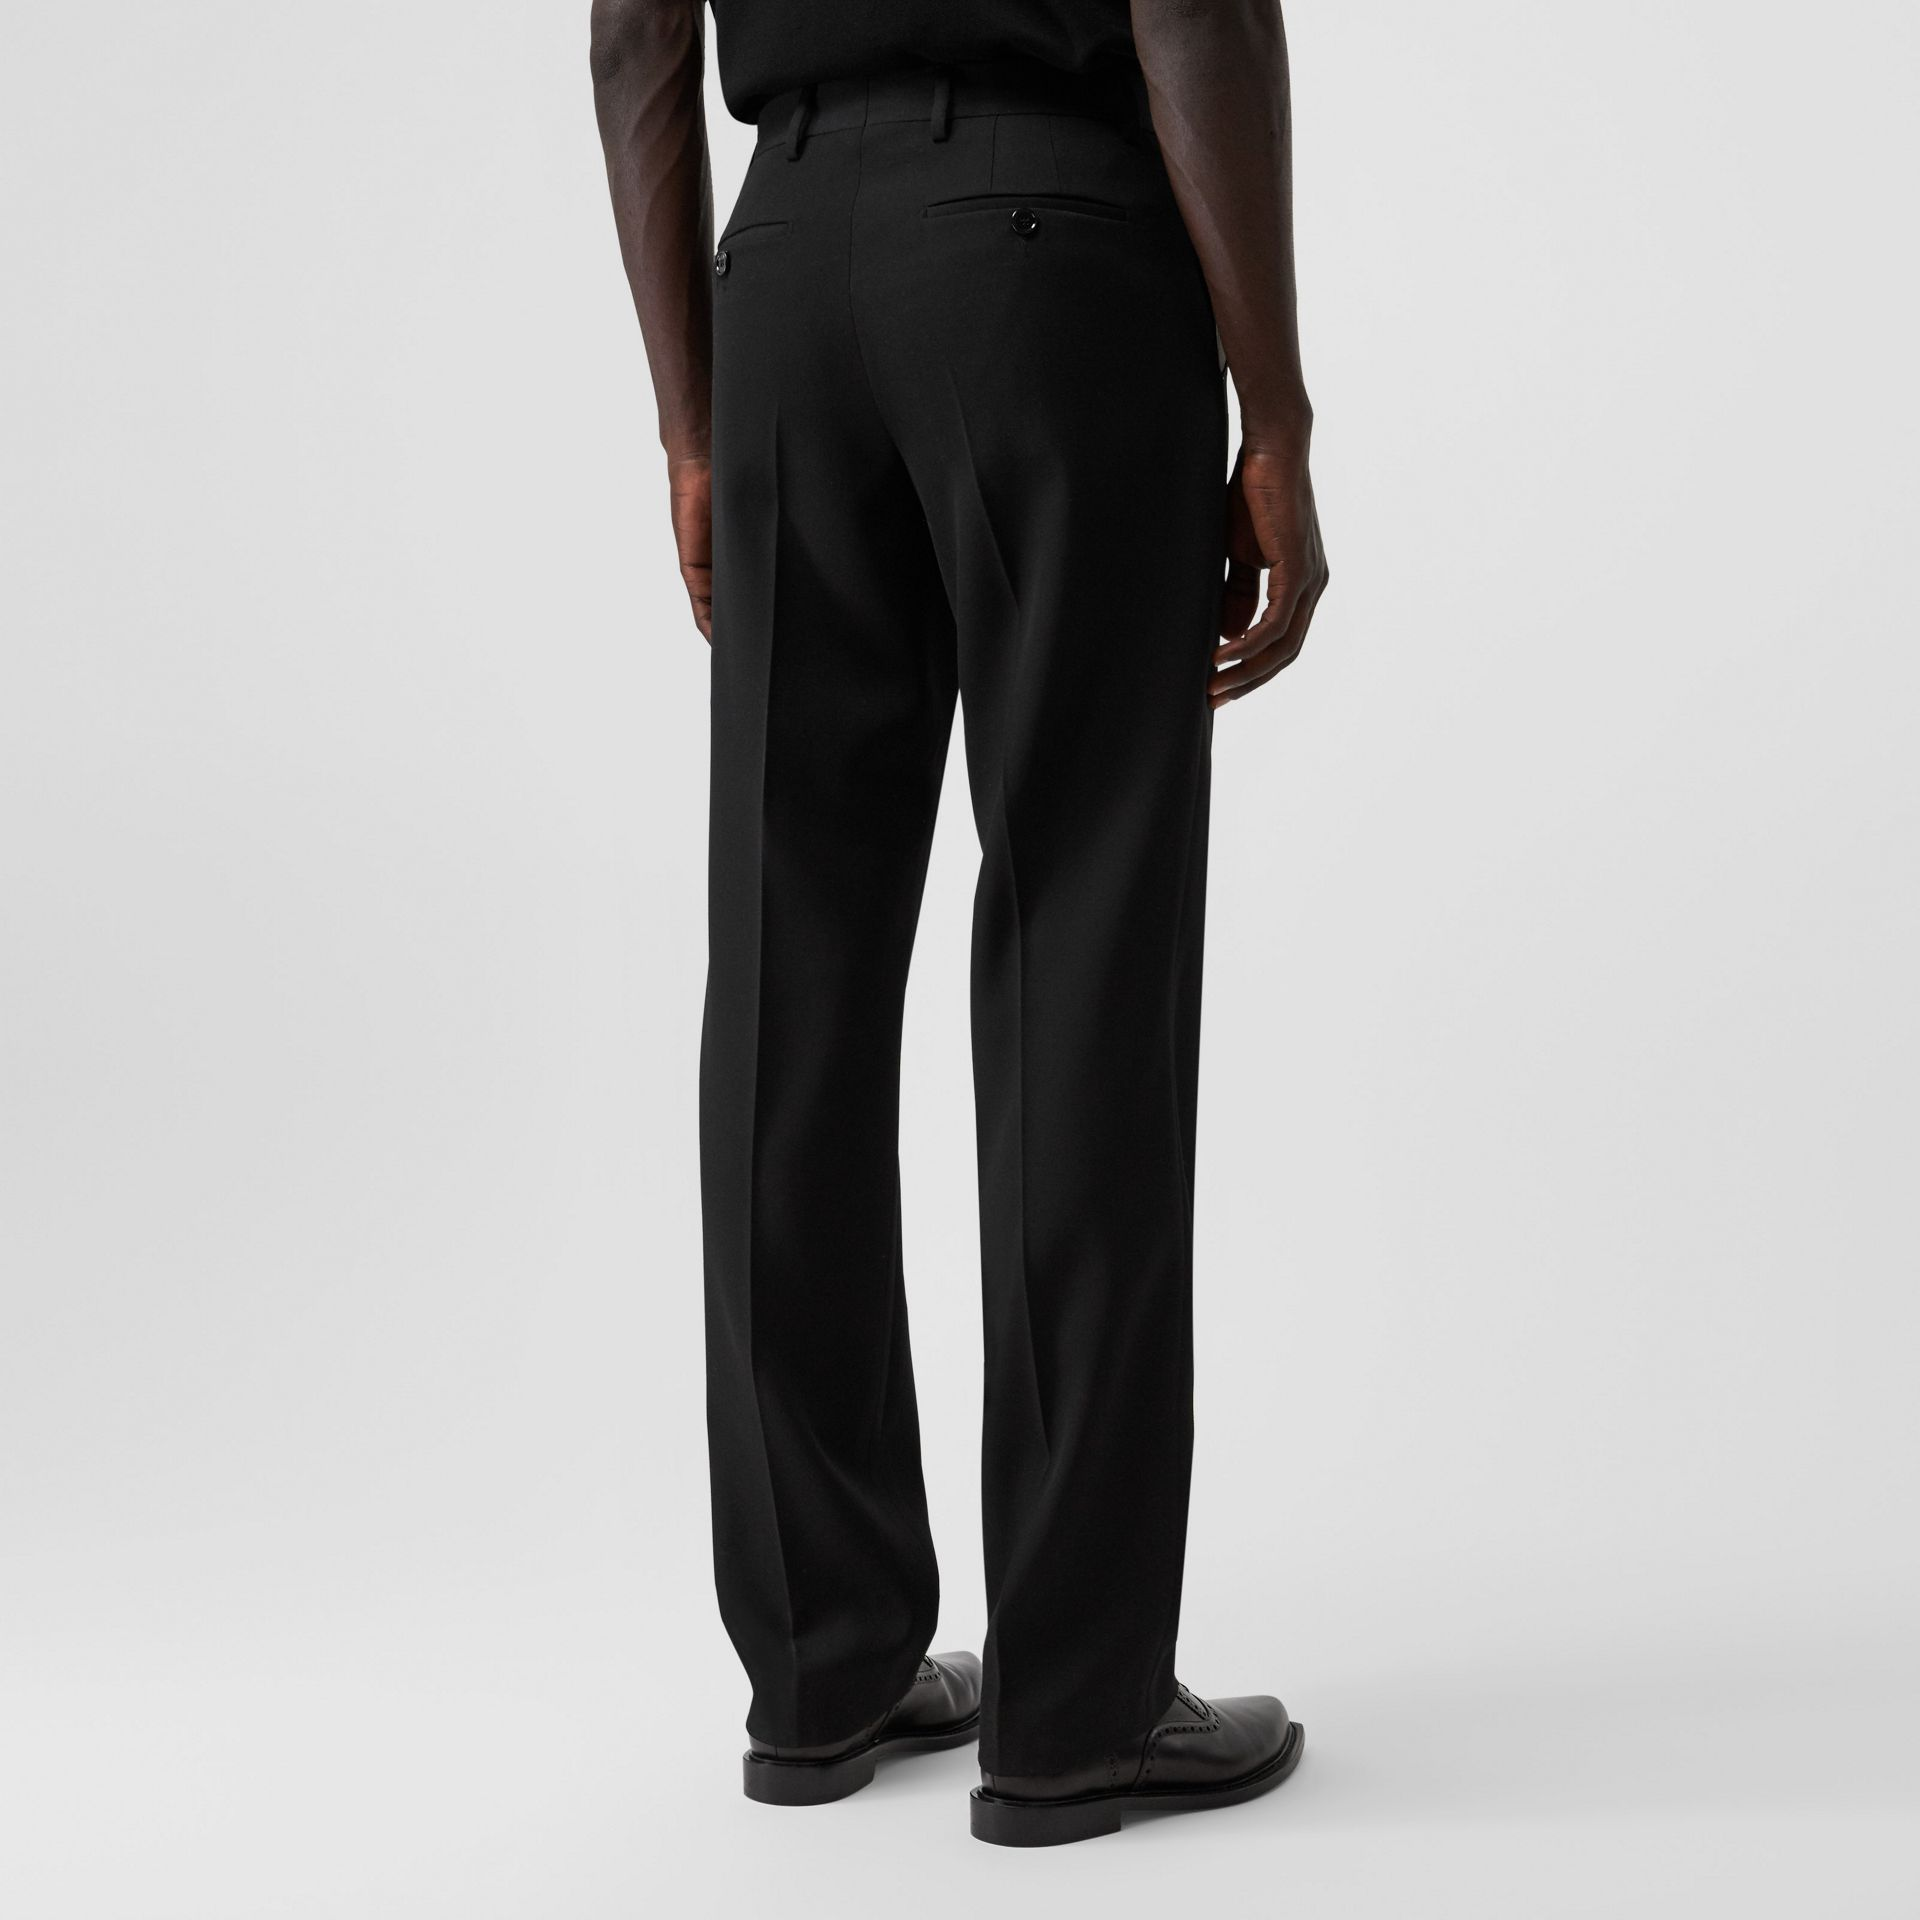 English Fit Pocket Detail Wool Tailored Trousers in Black | Burberry Australia - gallery image 2